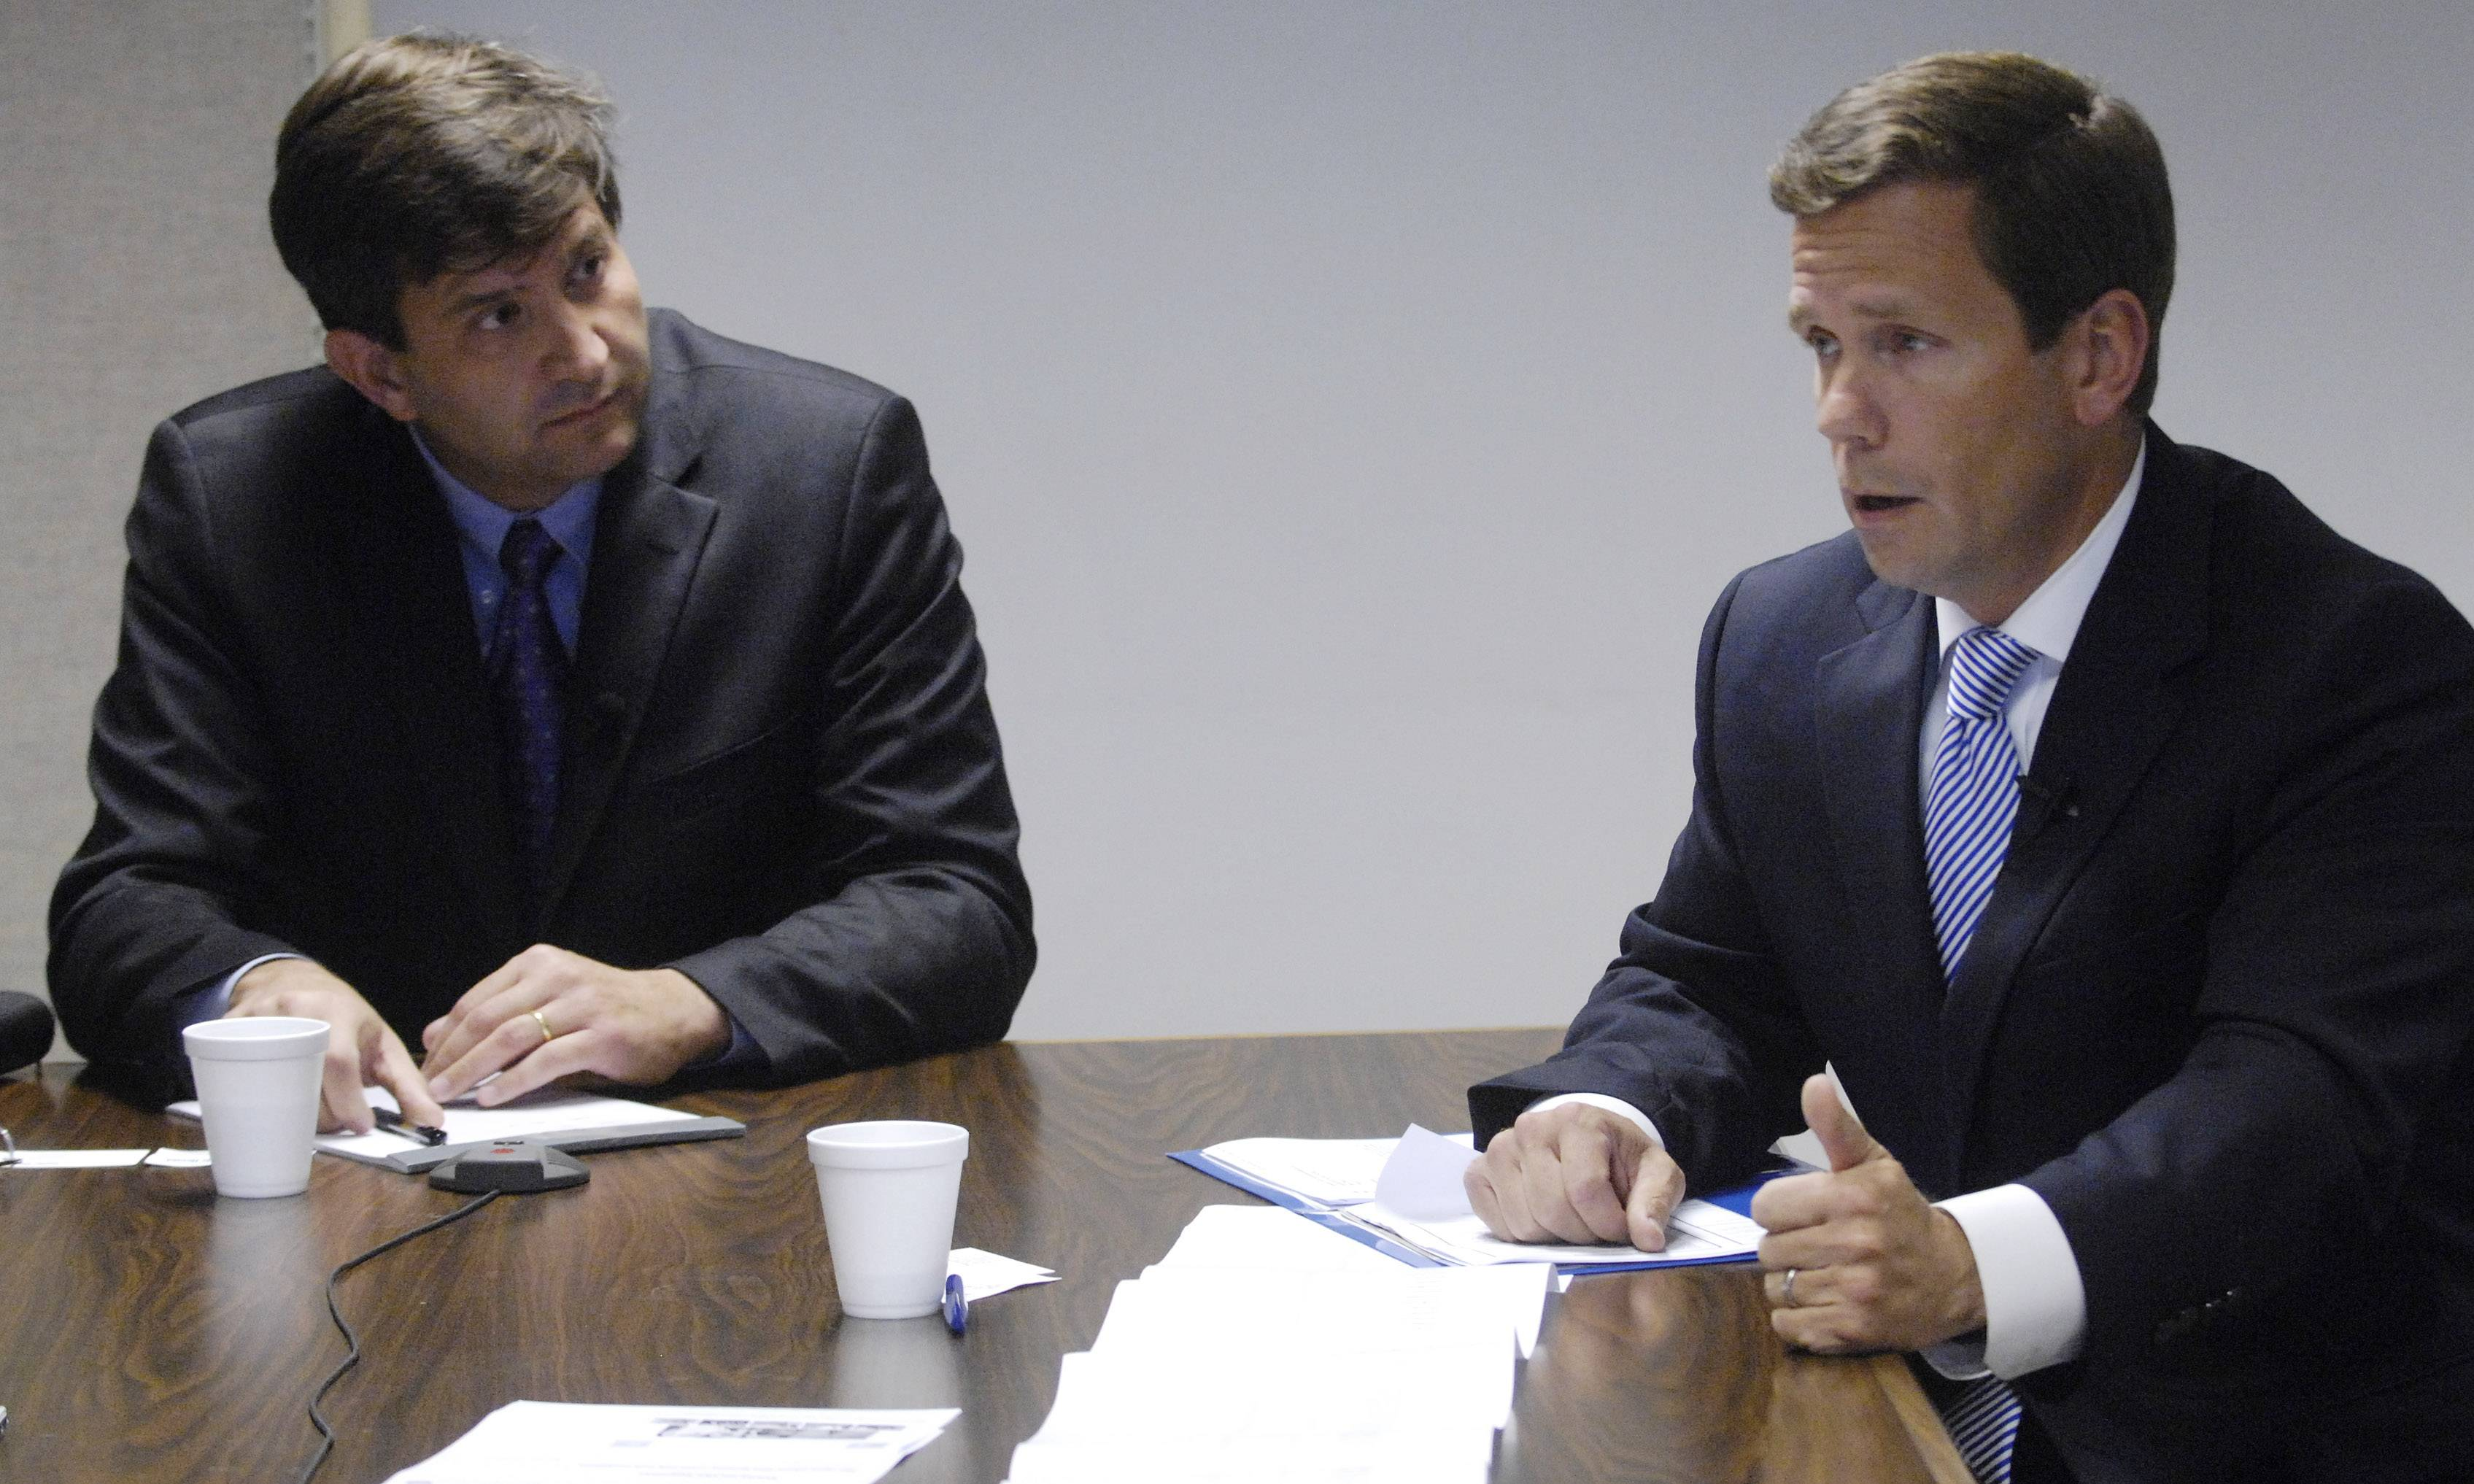 Democratic U.S. Rep. Brad Schneider, left, and Republican challenger Robert Dold are running in the 10th Congressional District. They appeared together at the Daily Herald's offices in 2012.